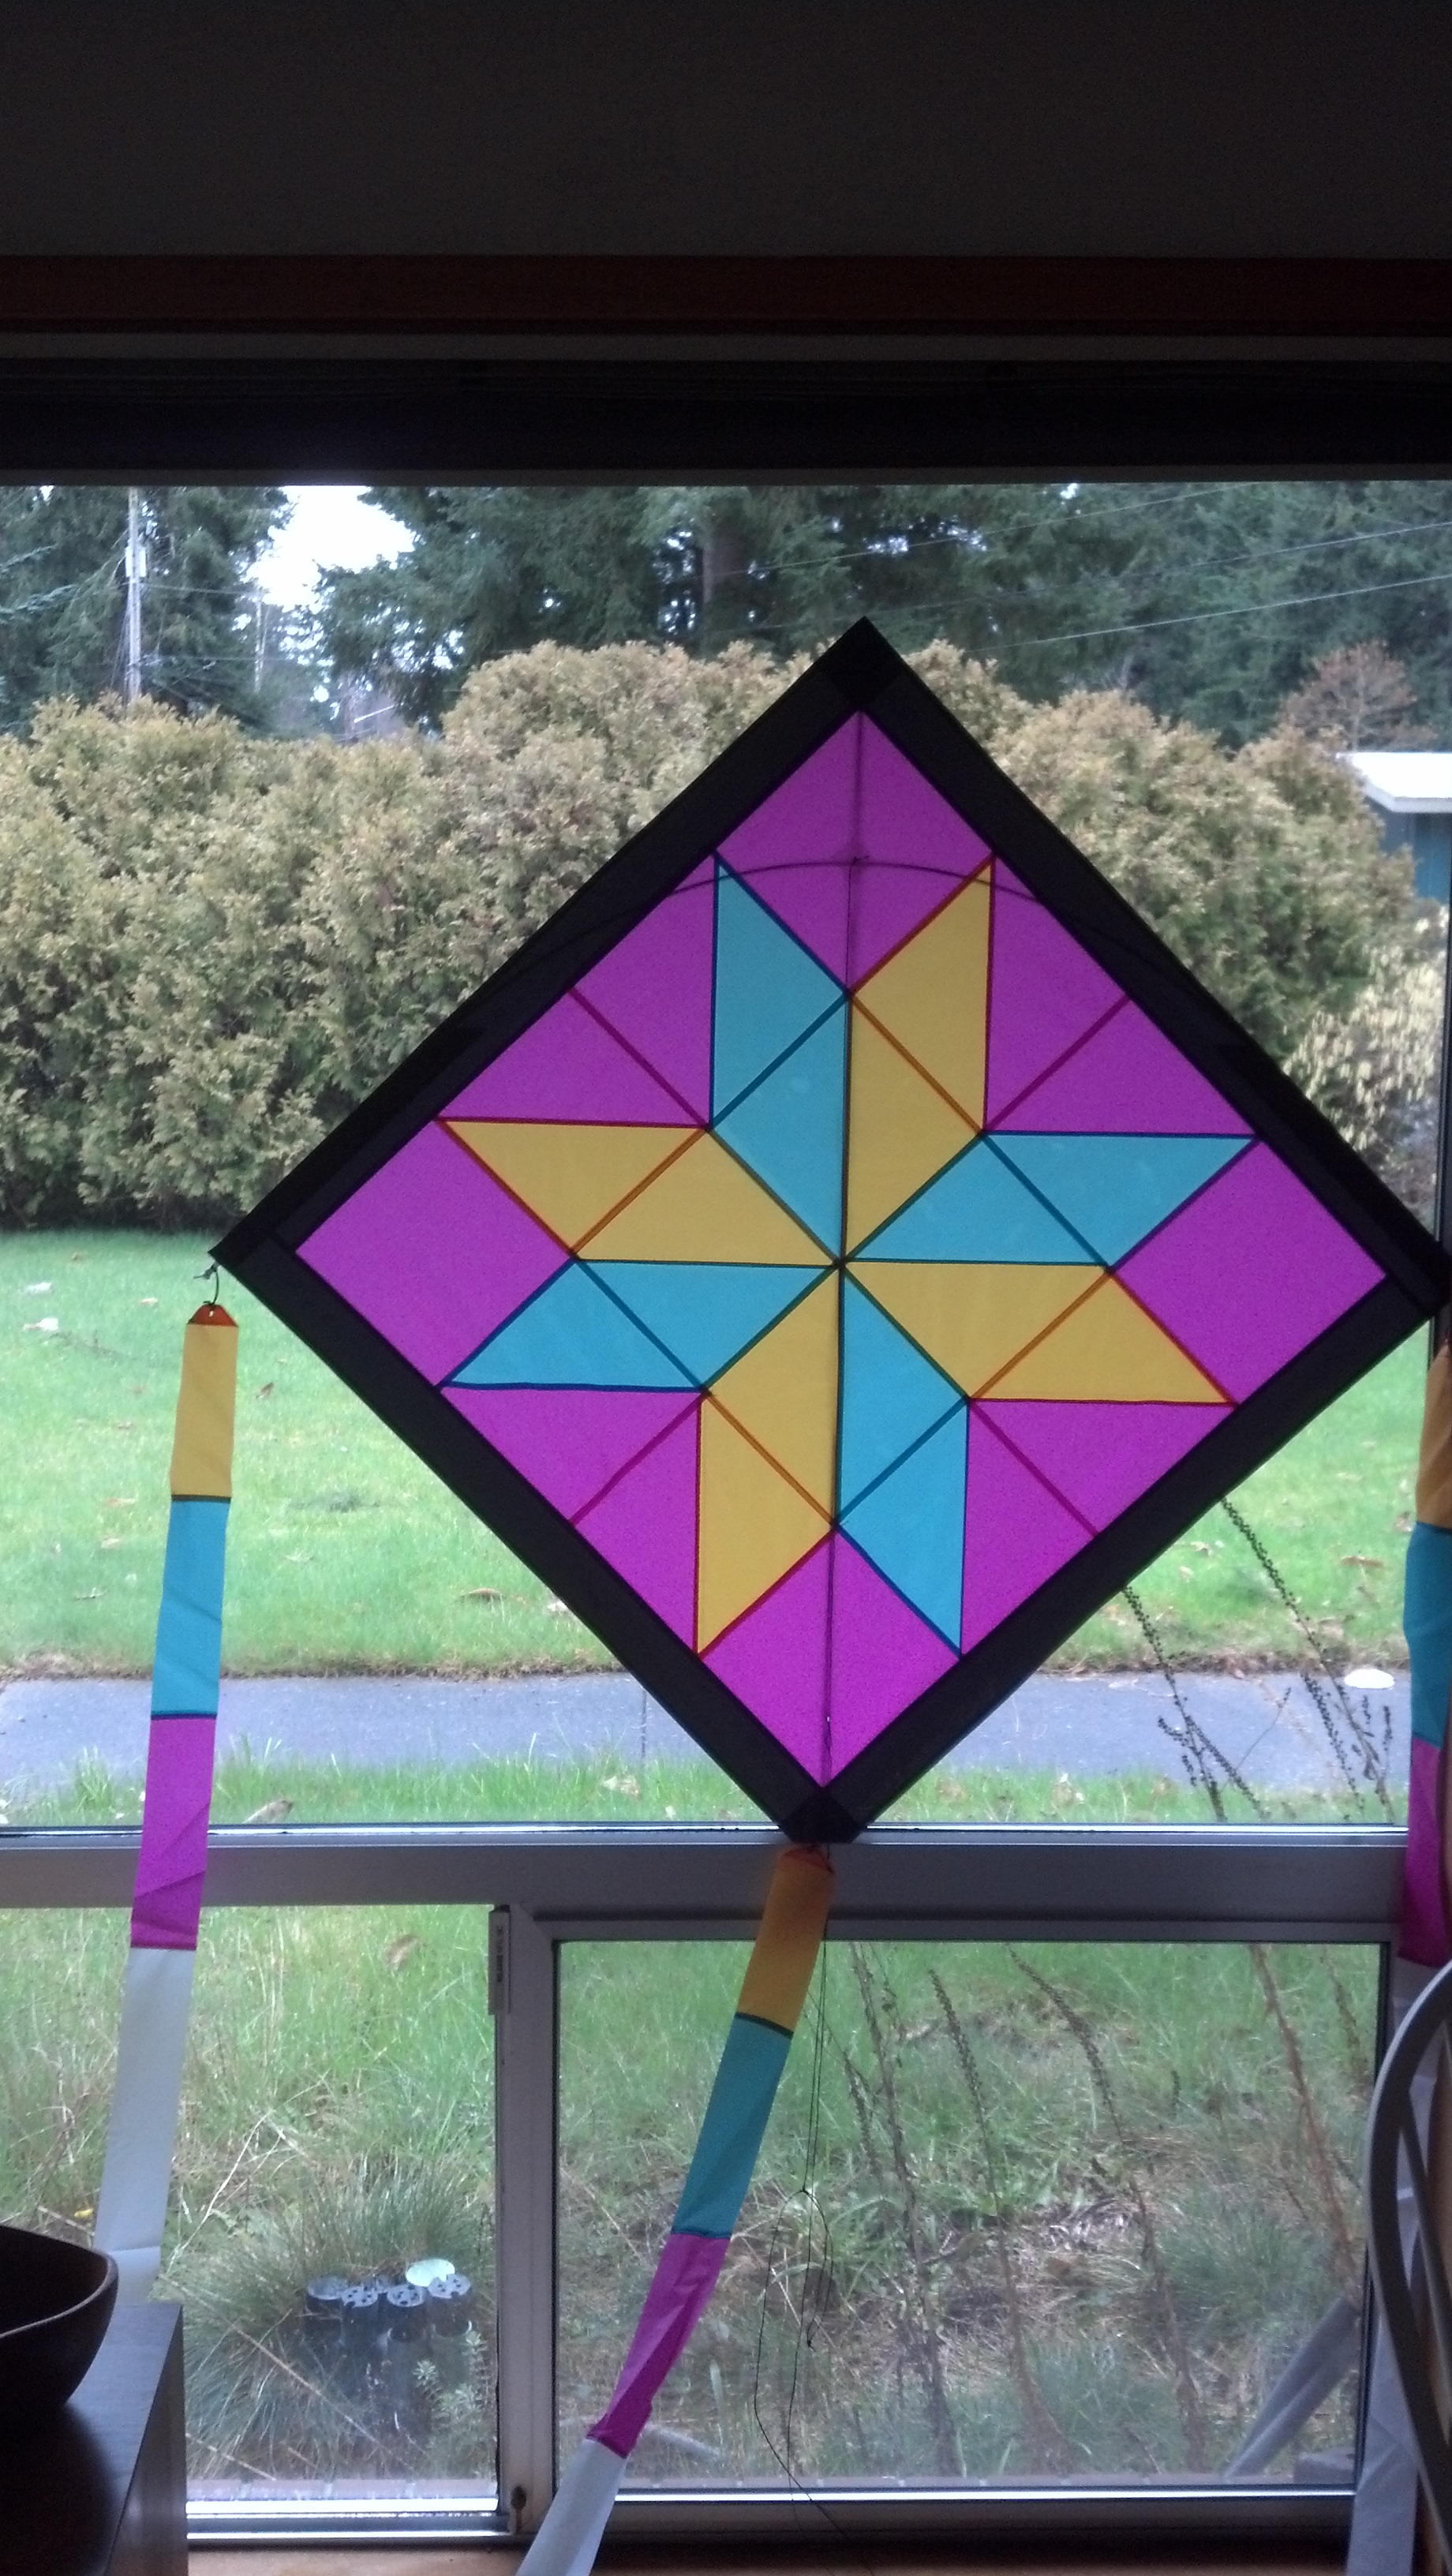 The Quilt Block Kite Plan